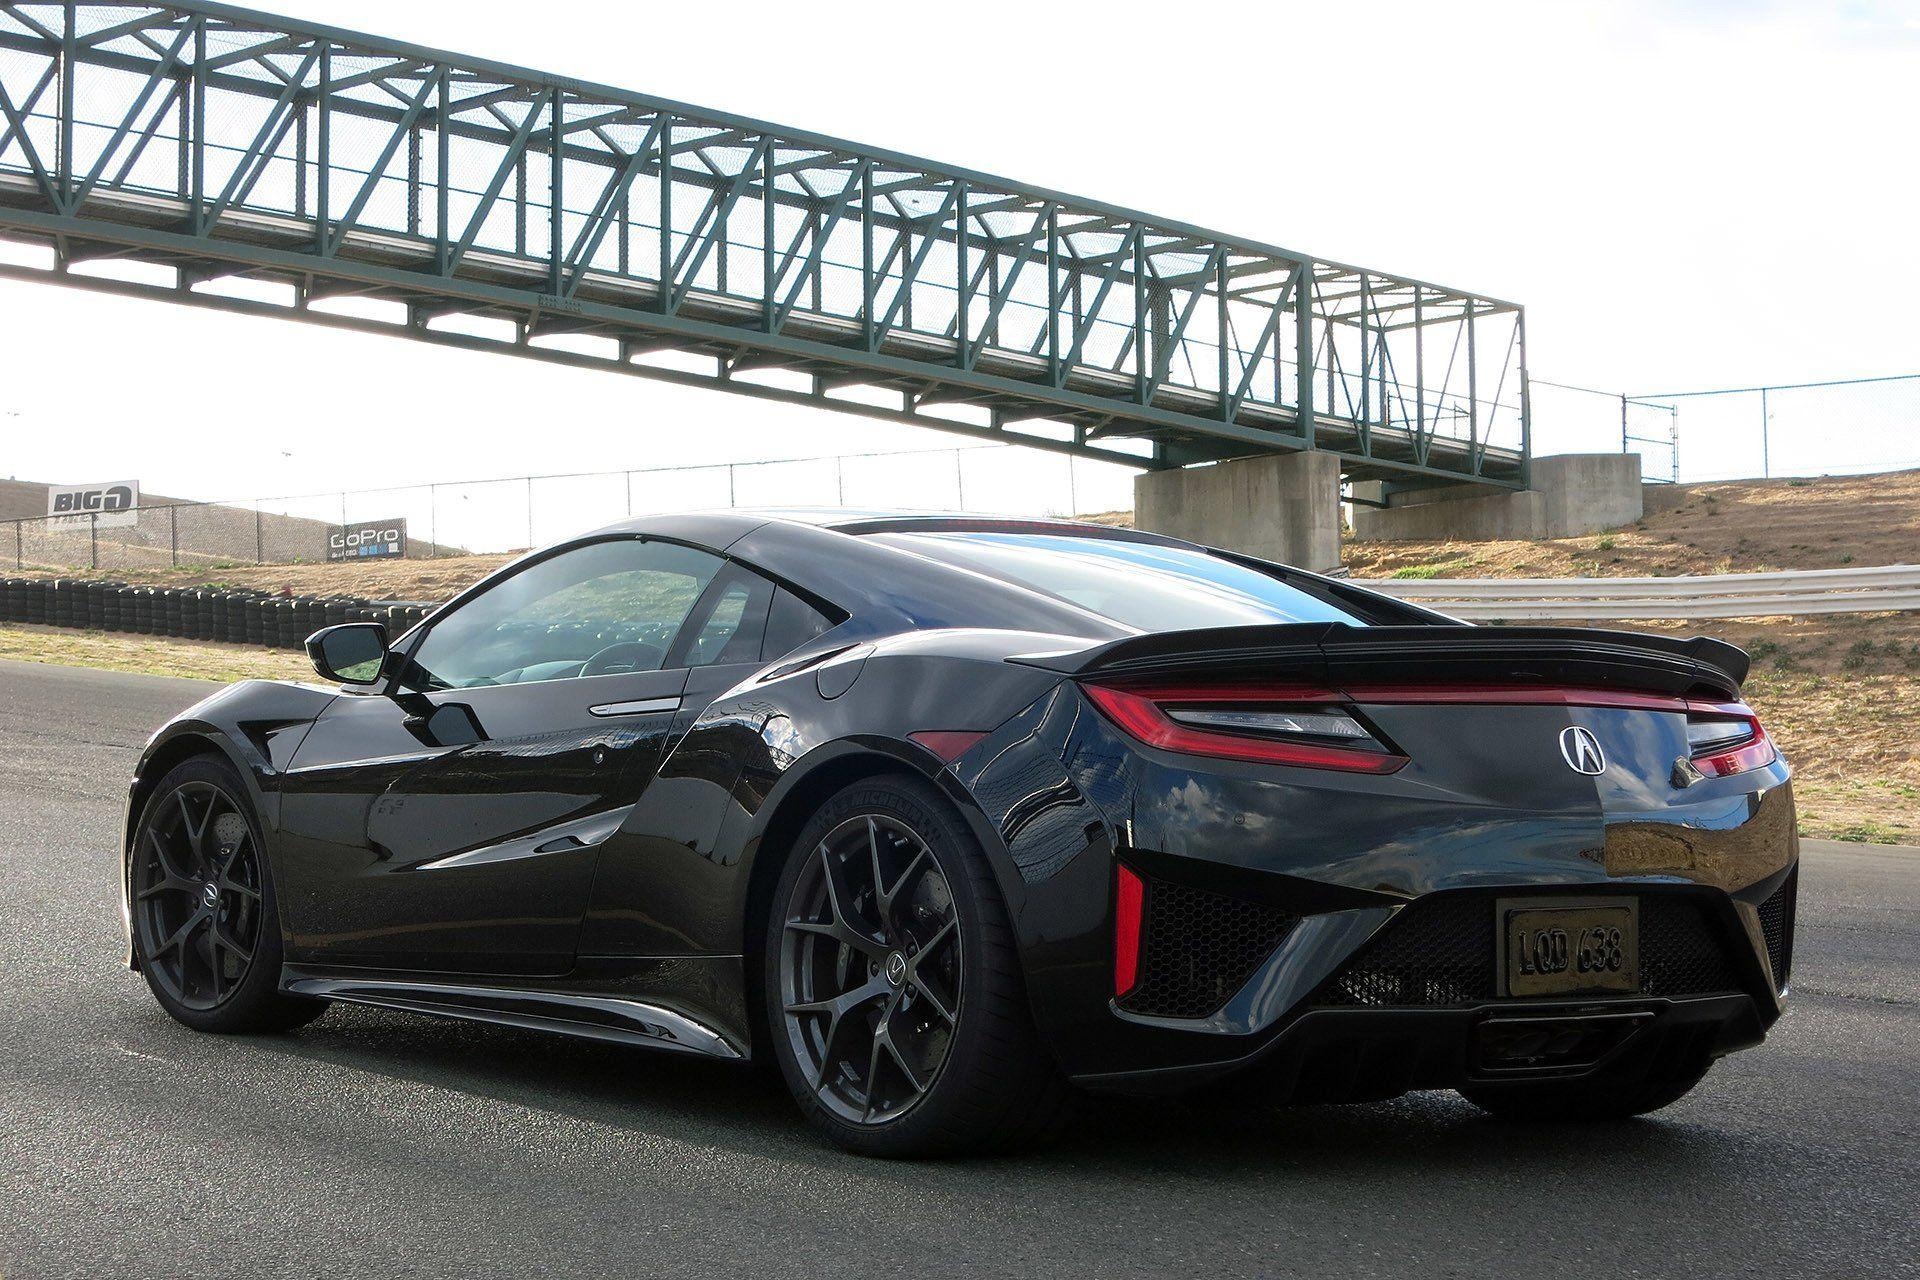 2017 Acura NSX cars coupe wallpaper | 1920x1280 | 825240 | WallpaperUP